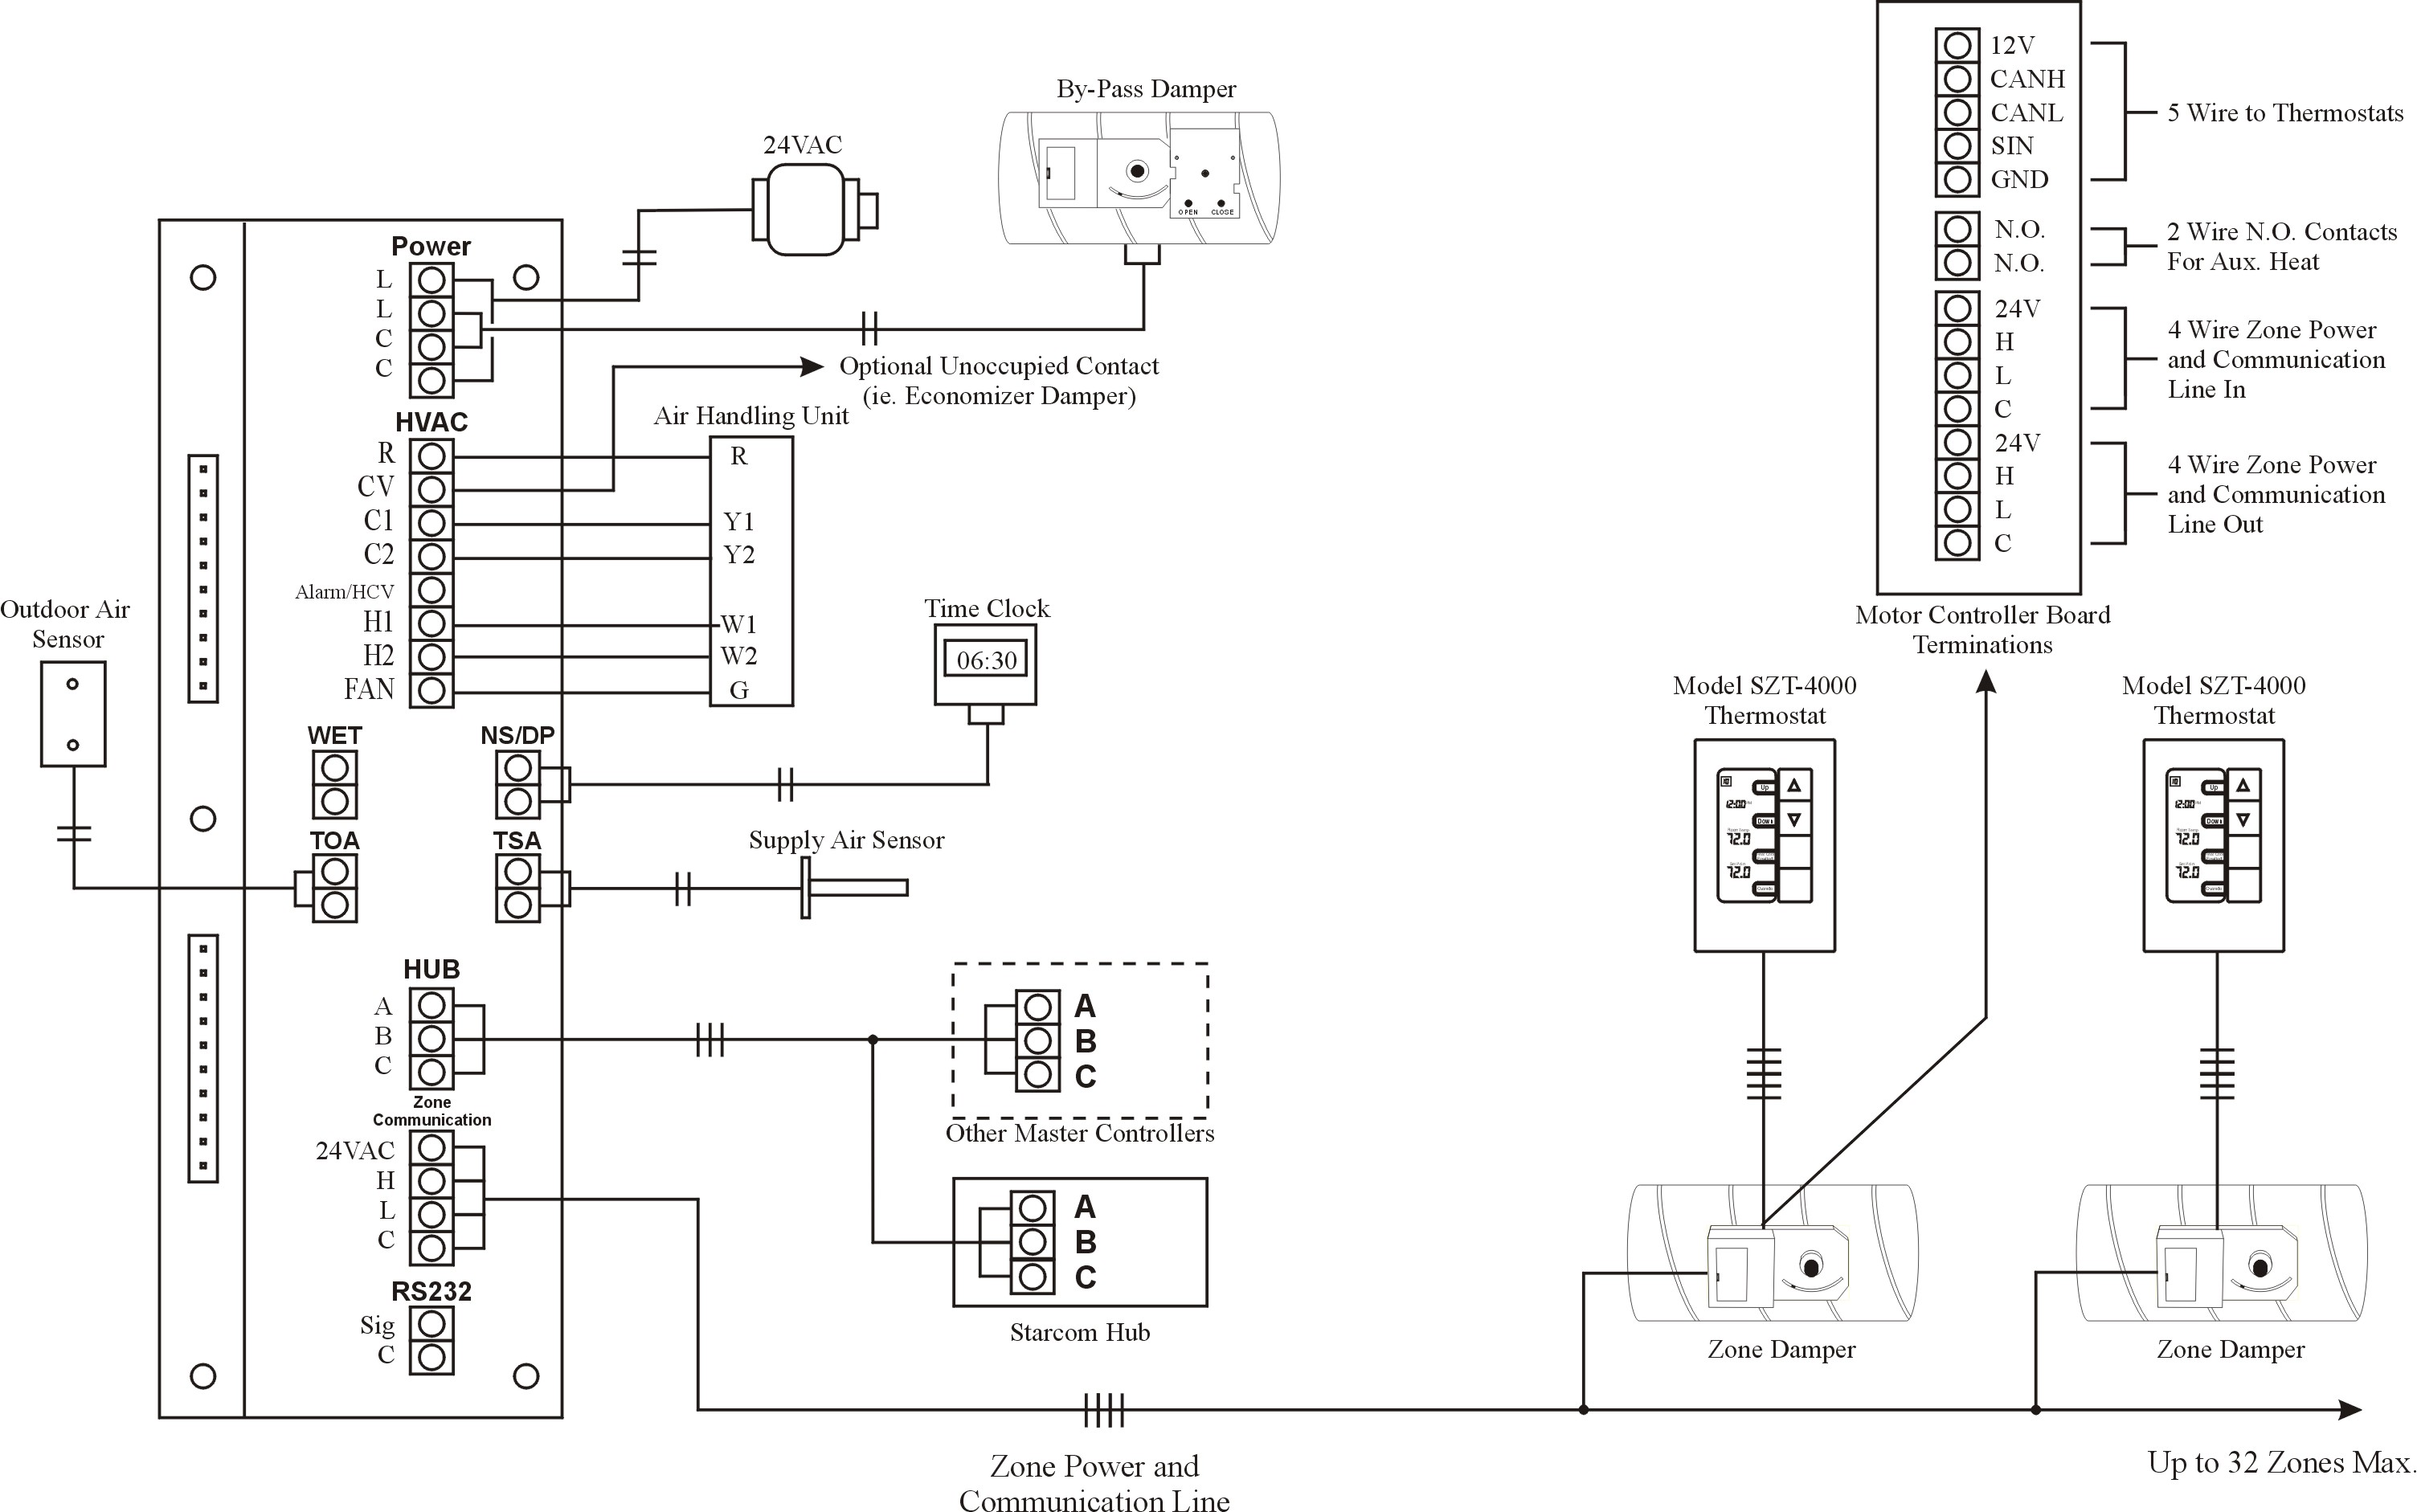 For Fire System Wire Diagrams Wiring Diagram Will Be A Thing Extreme X8 Zone All Controls Rh Zoneall Ca Apple Headphone